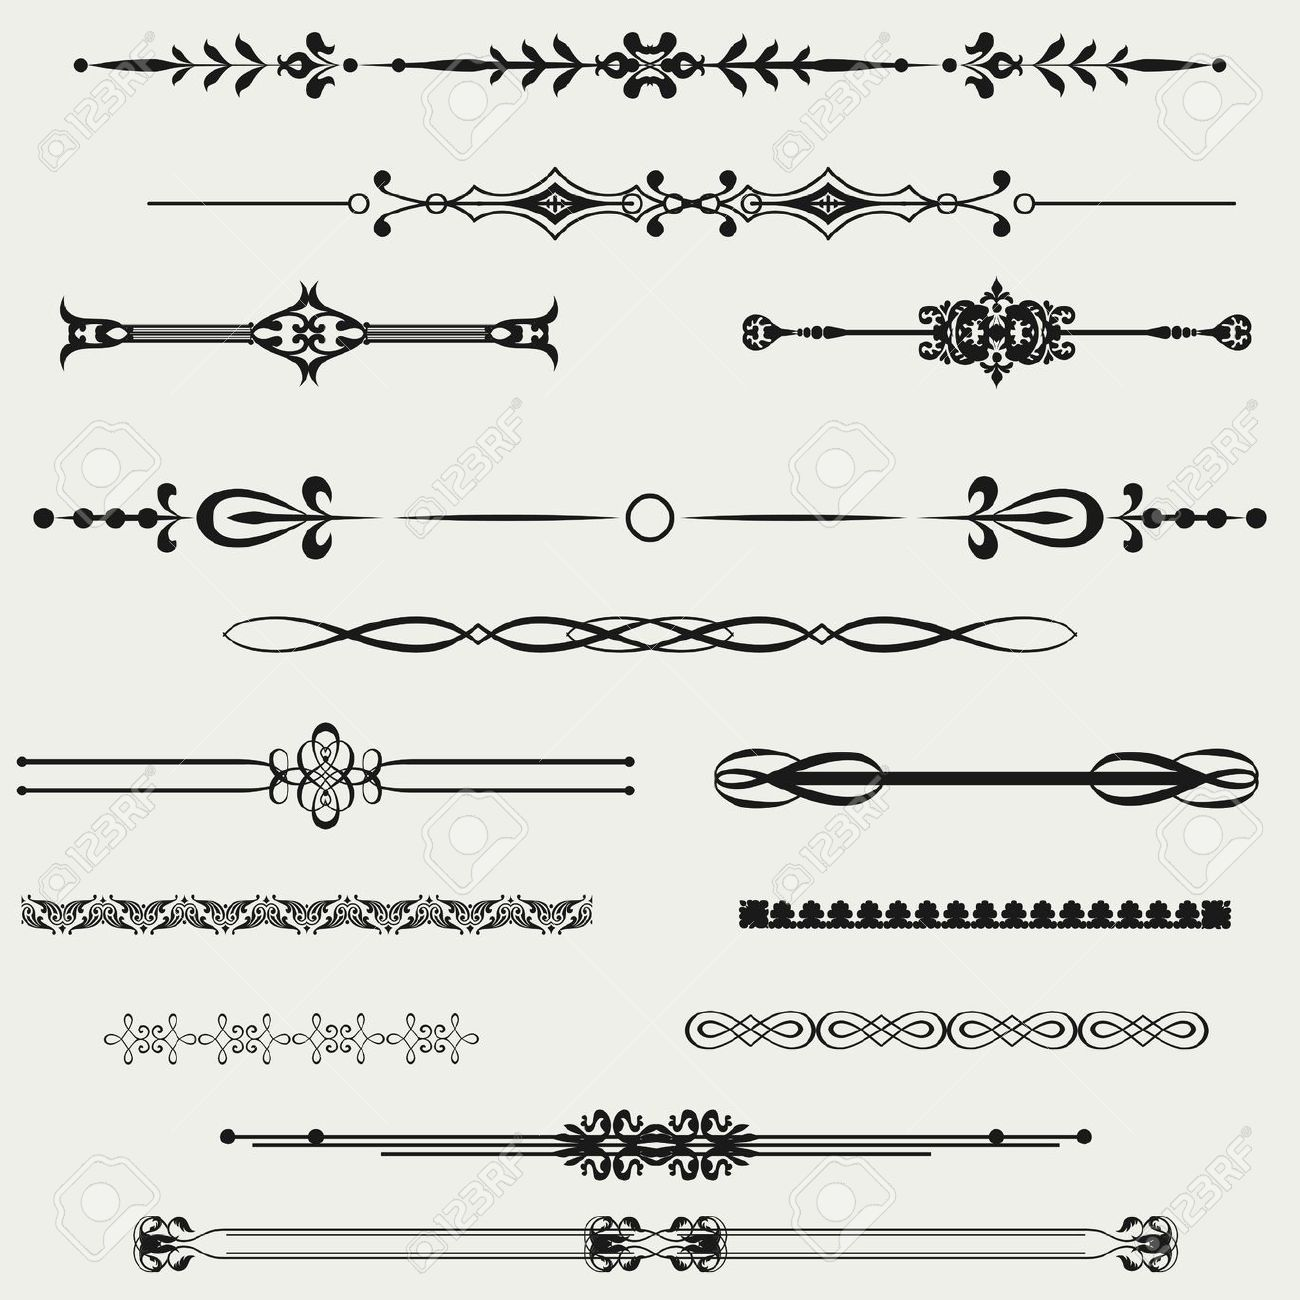 horizontal line designs - Google Search | Cricut ...